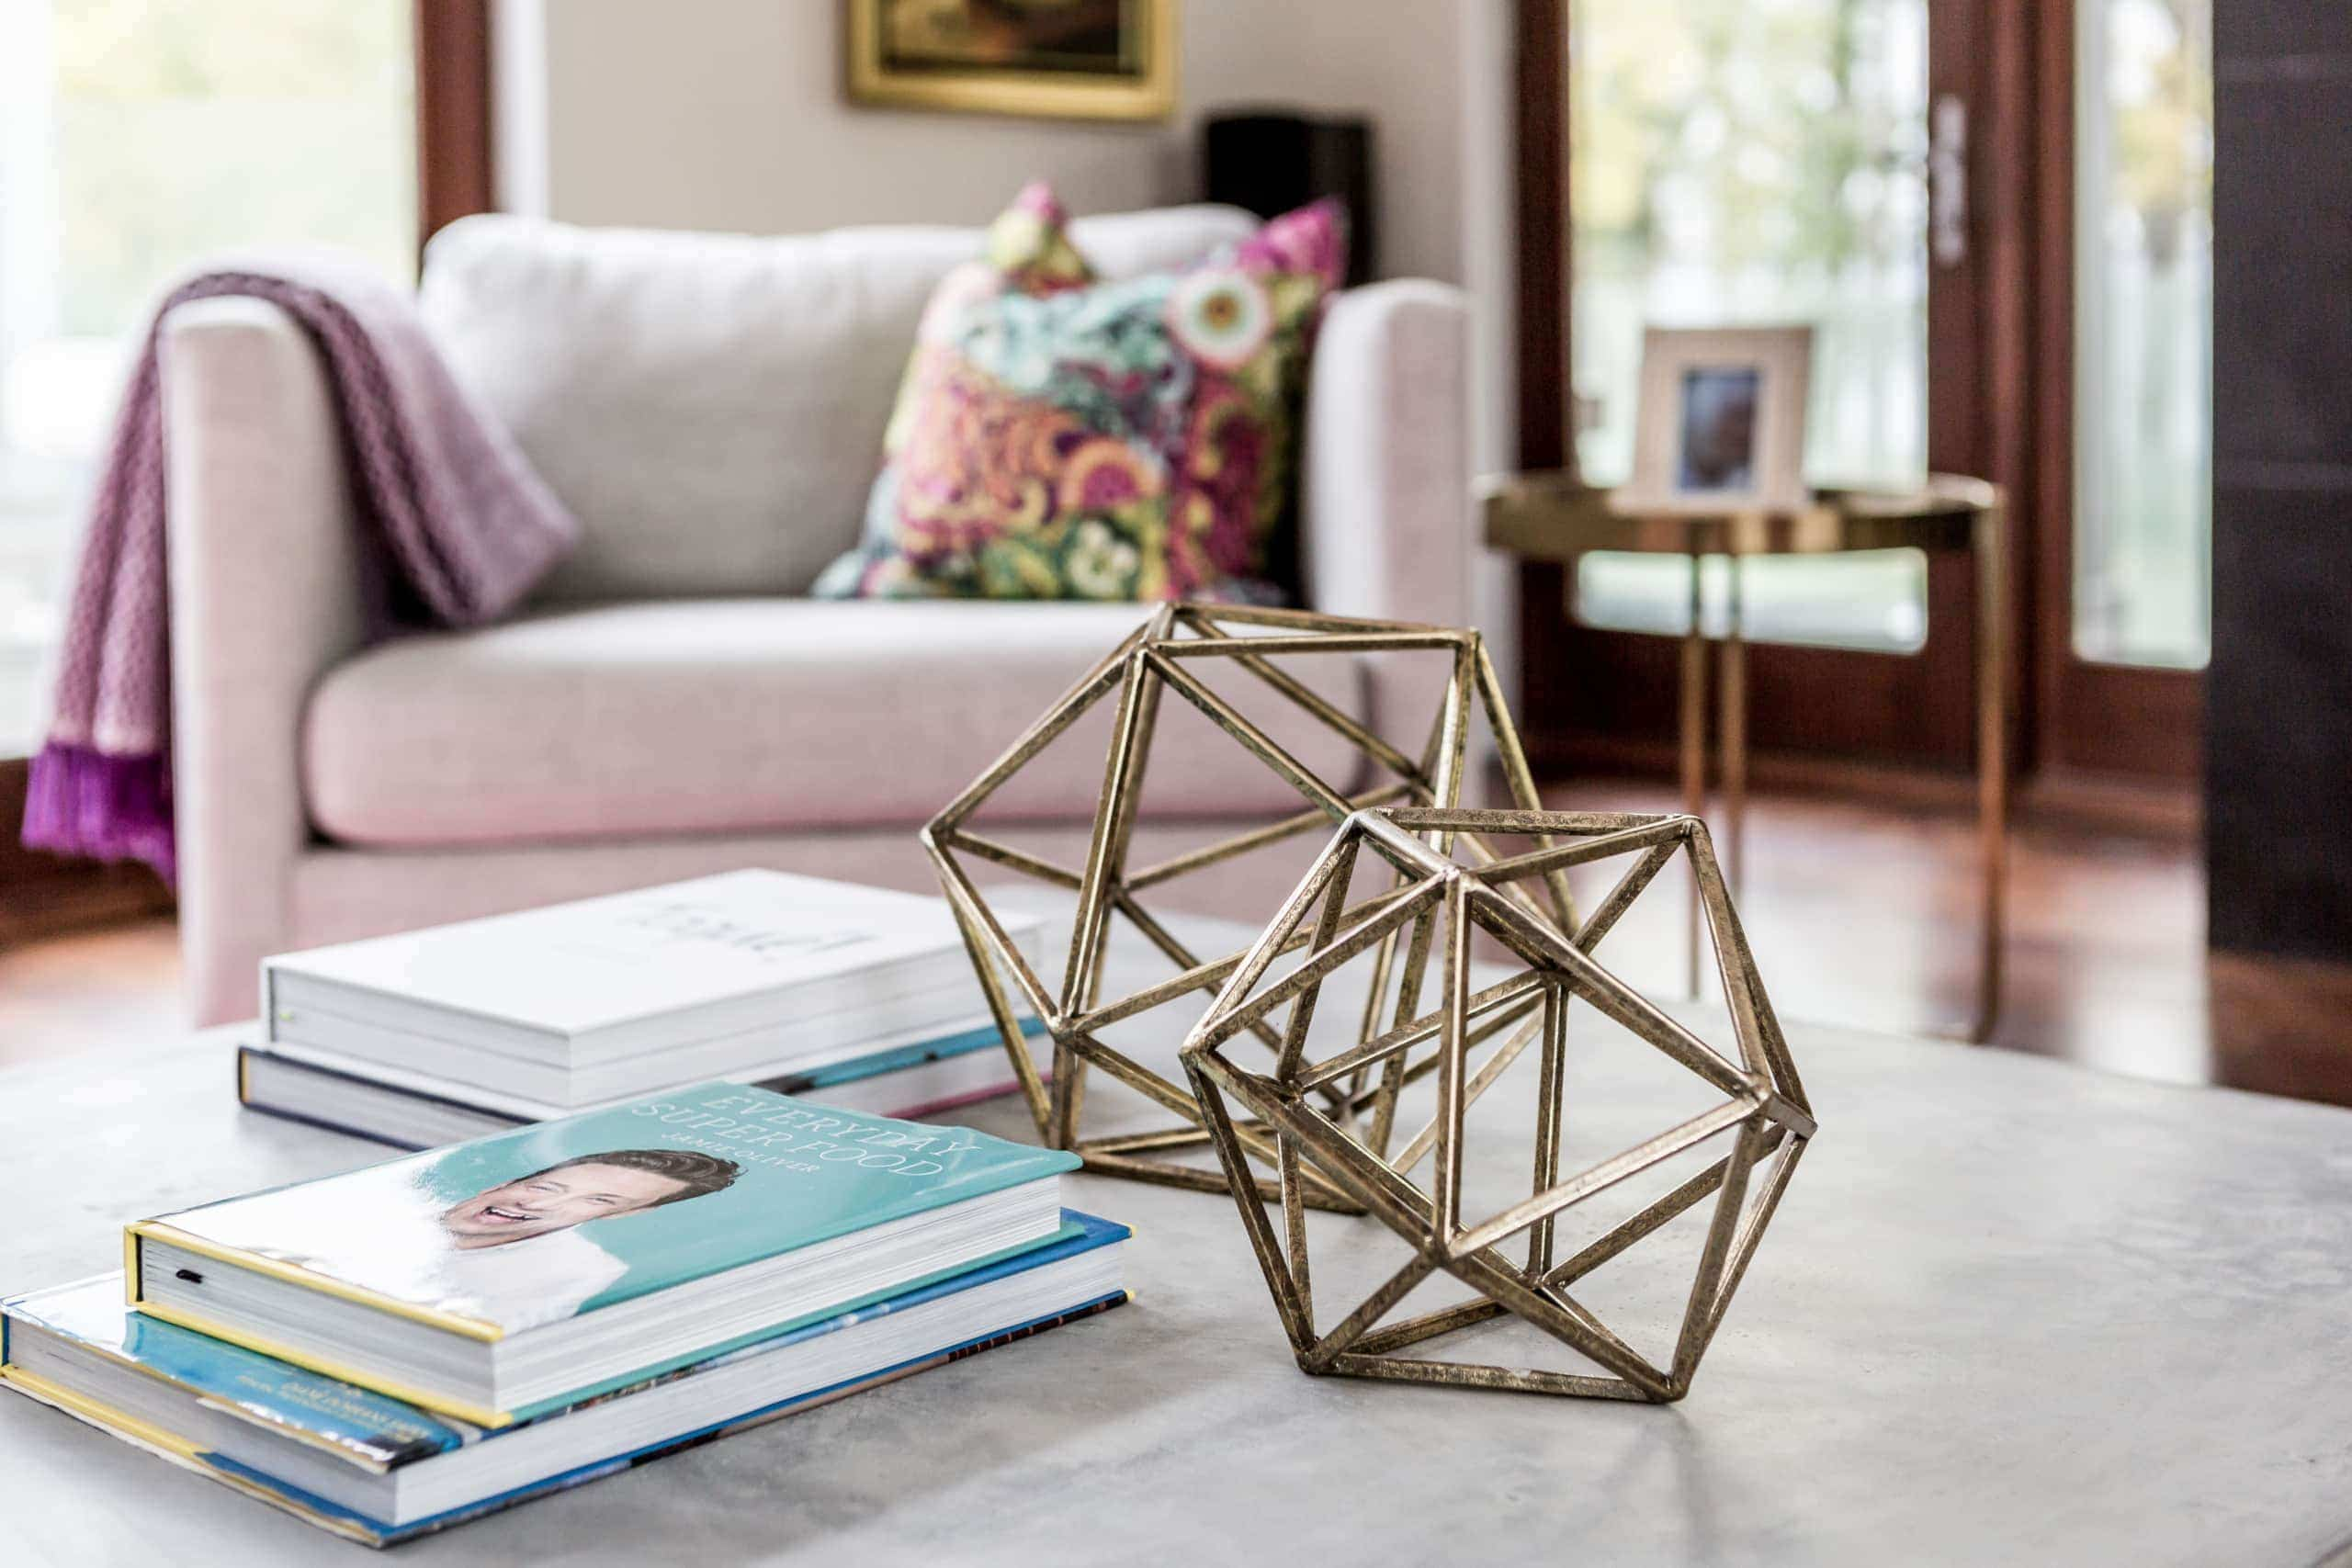 Gold colored polygonal decorations on a coffee table